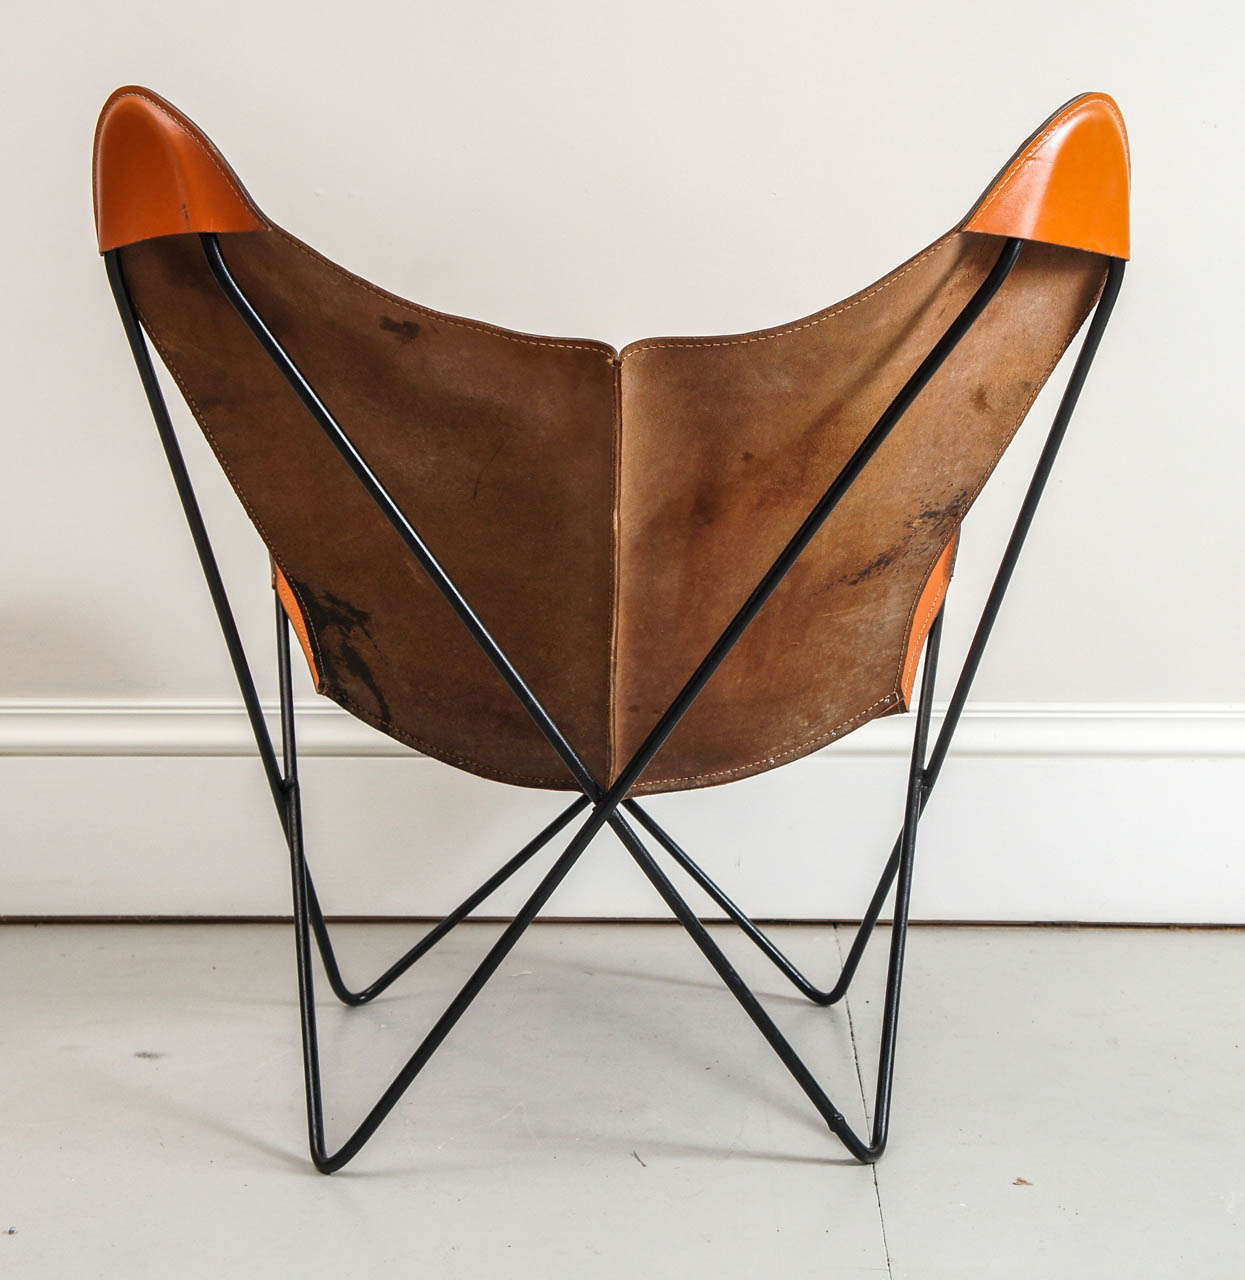 airborne butterfly chair ikea bean bag mid century hardoy in leather at 1stdibs